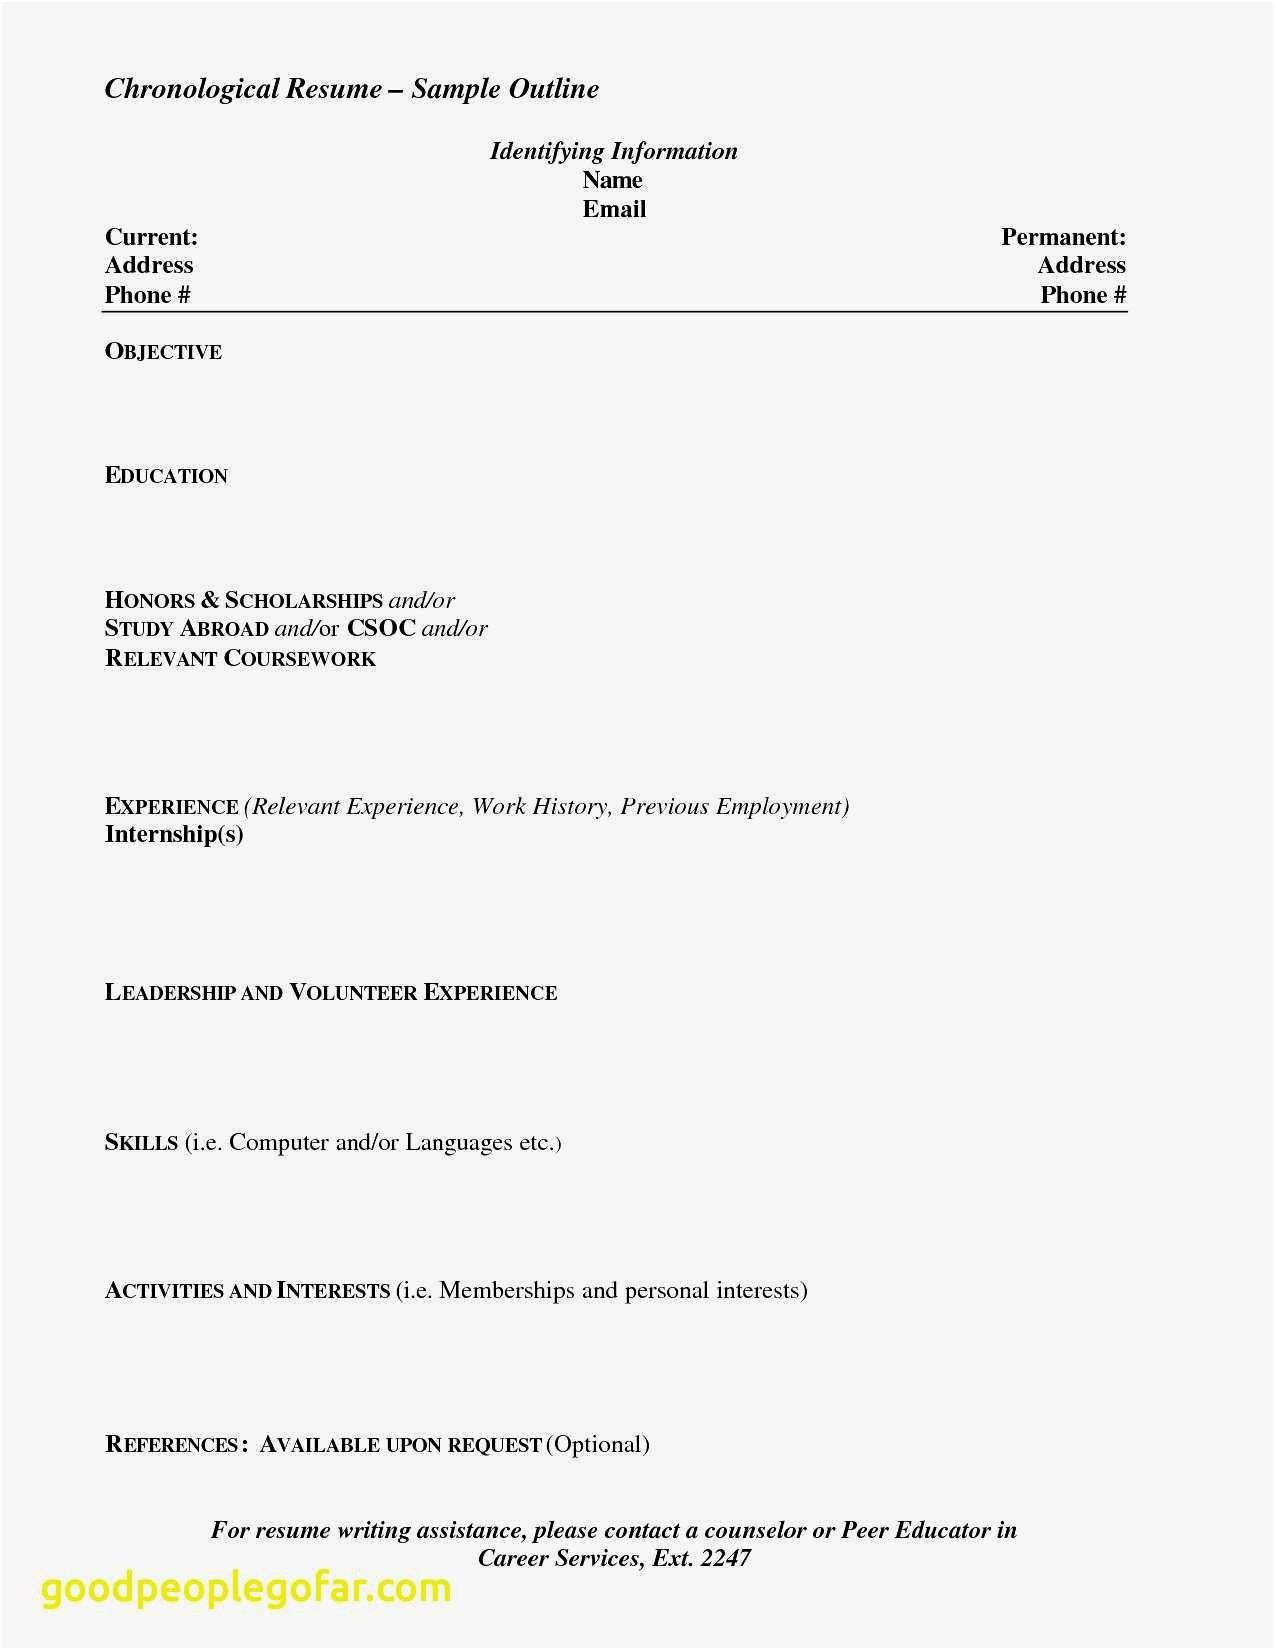 Best Customer Service Resume - Good Objective Statement for Resume for Customer Service Free